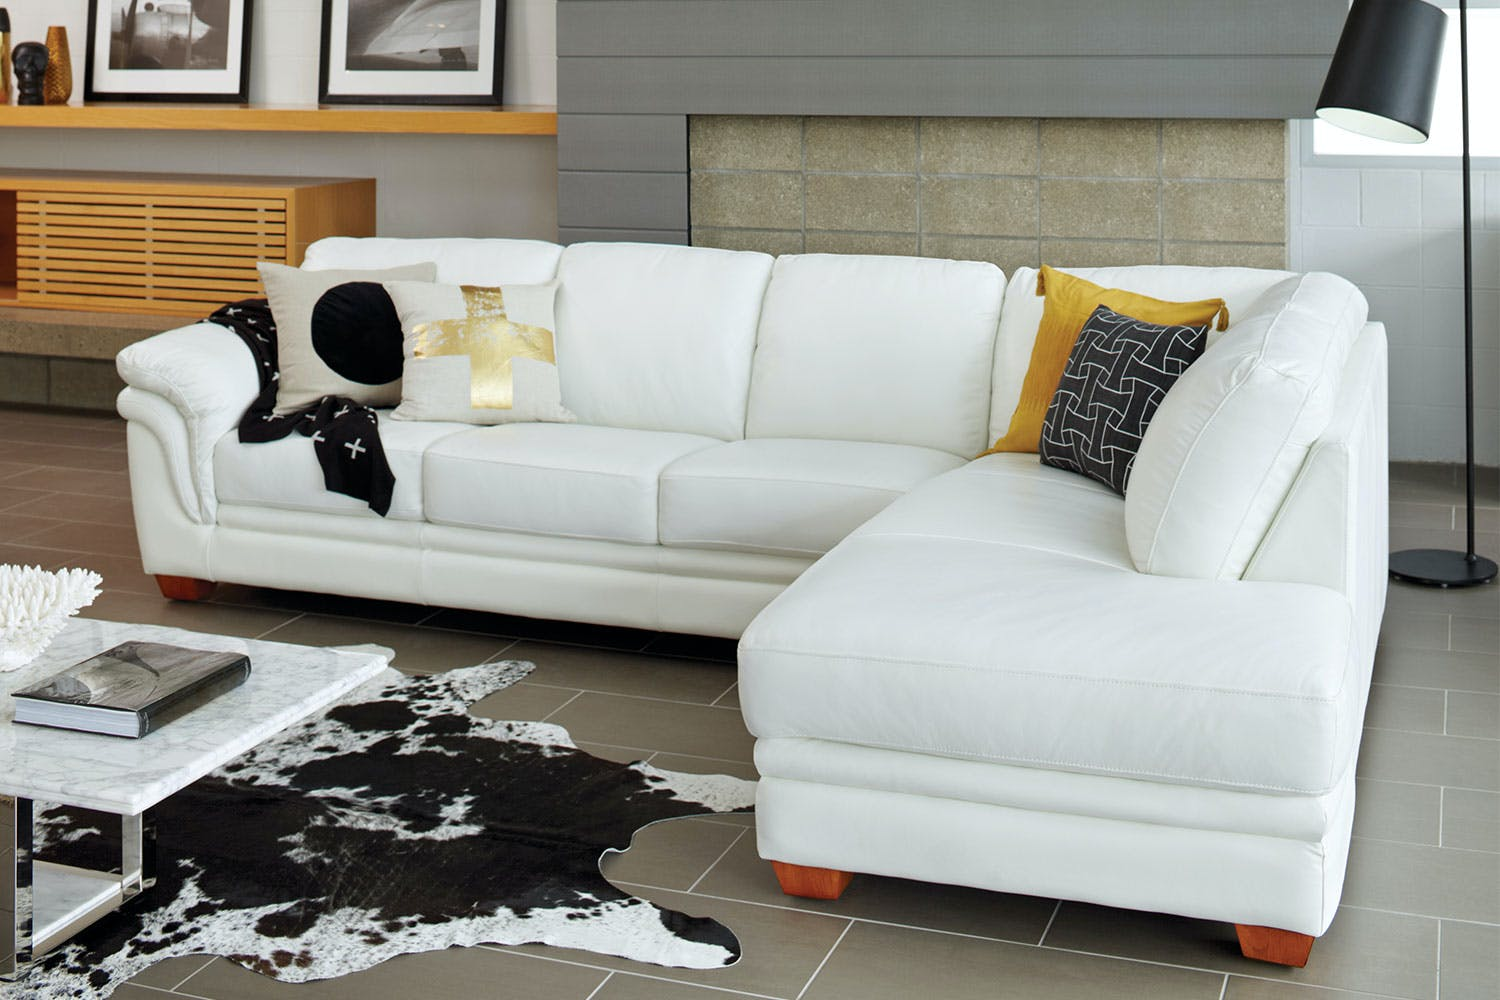 Demi 3 Seater Leather Lounge with Chaise by La-Z-Boy